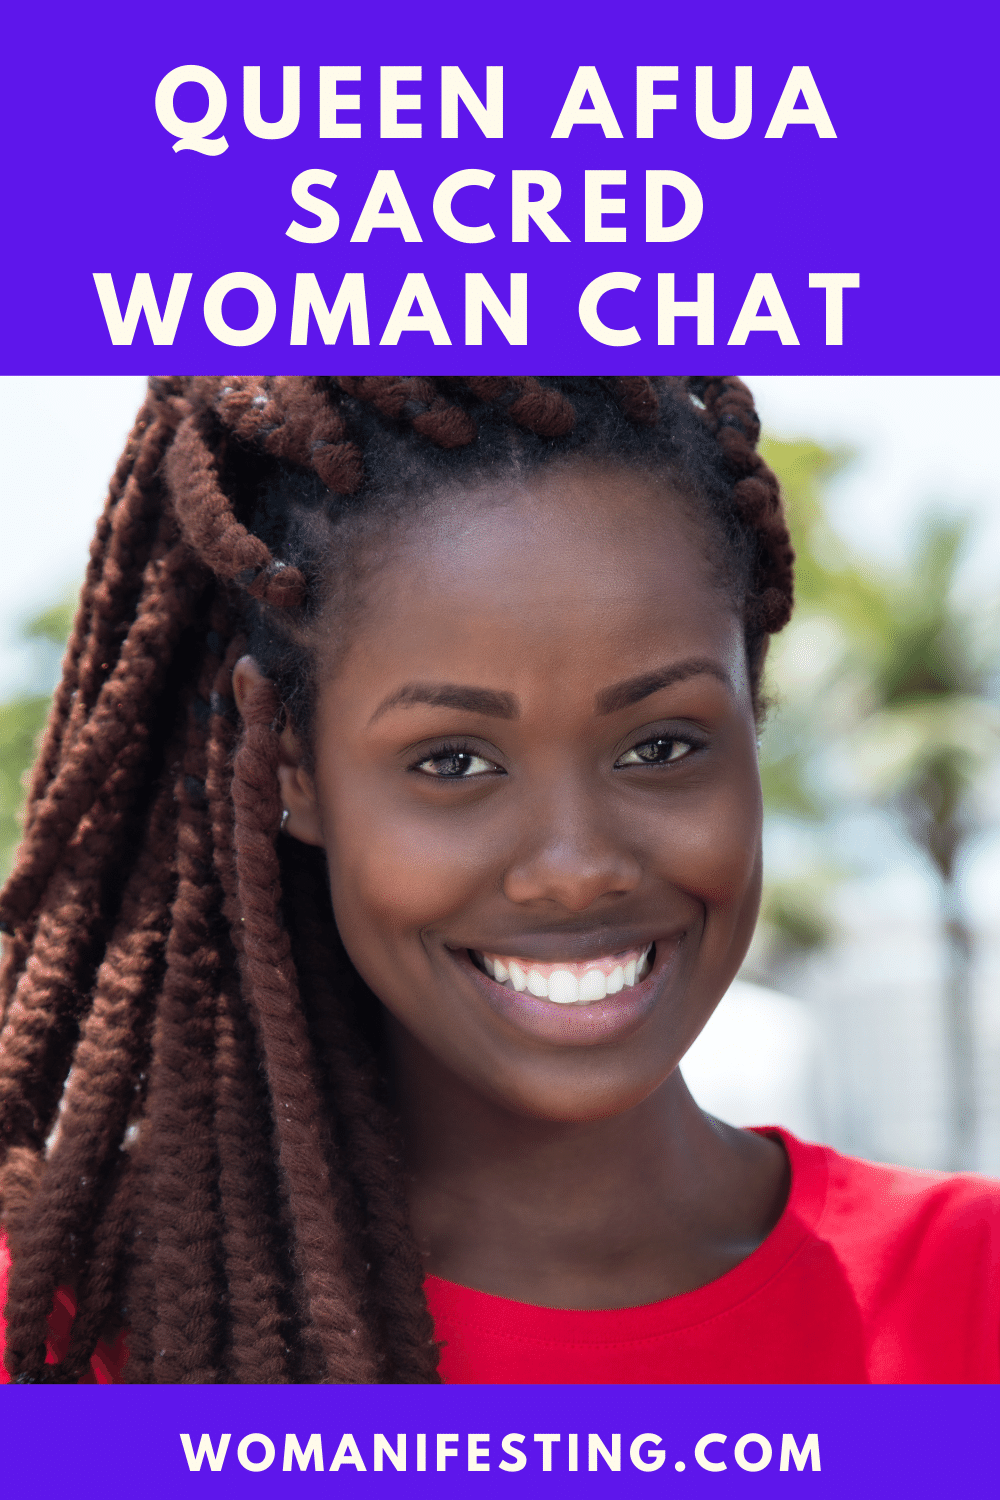 Queen Afua Sacred Woman Conversation with Abiola